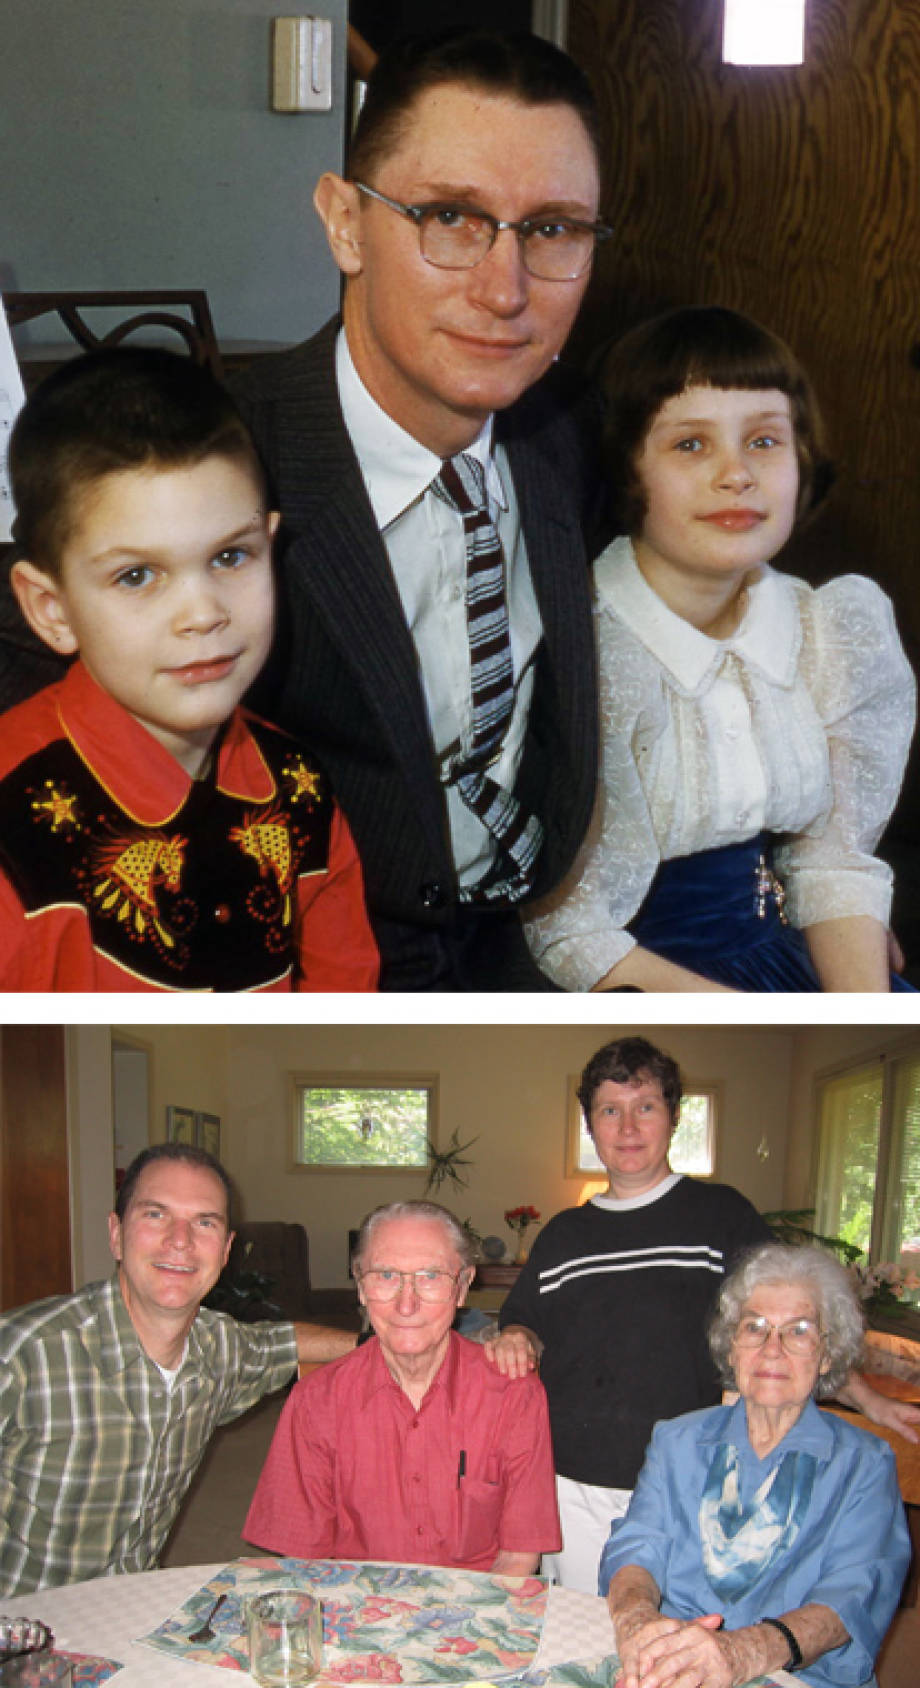 Top: Boyd O'Dell poses with his children in this photo from the '60s. Bottom: The O'Dell family (with Vera on the far right), taken in 2003. Photos courtesy of Ann O'Dell.